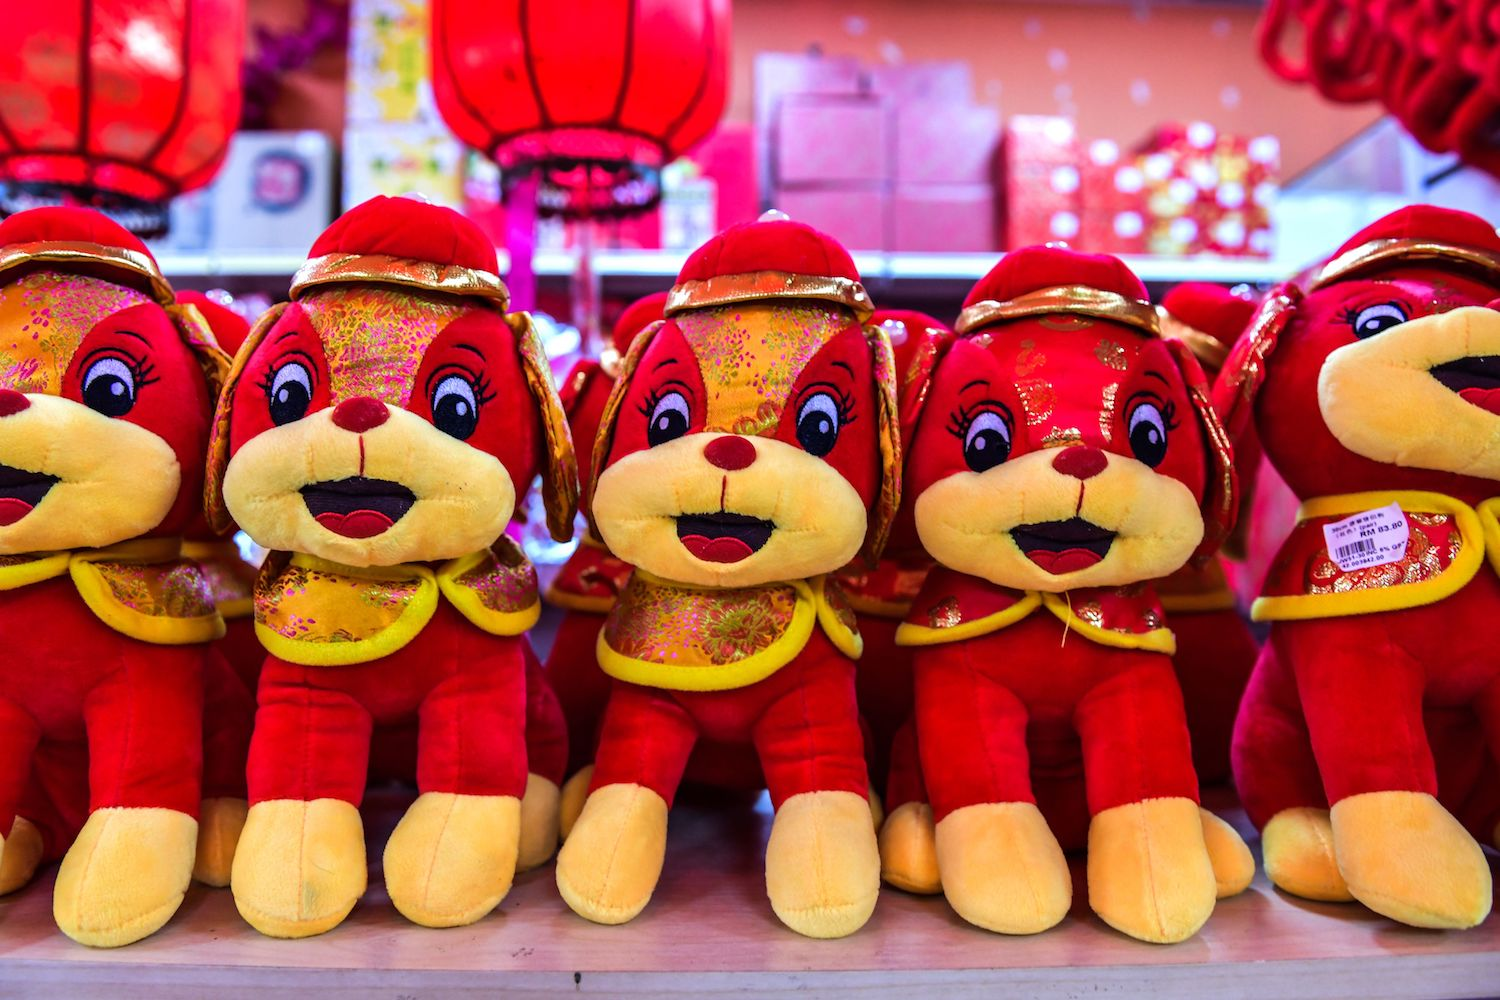 Decorative dog figurines are seen for sale ahead of the Lunar New Year celebrations in Kuala Lumpur's Chinatown on Jan. 26.